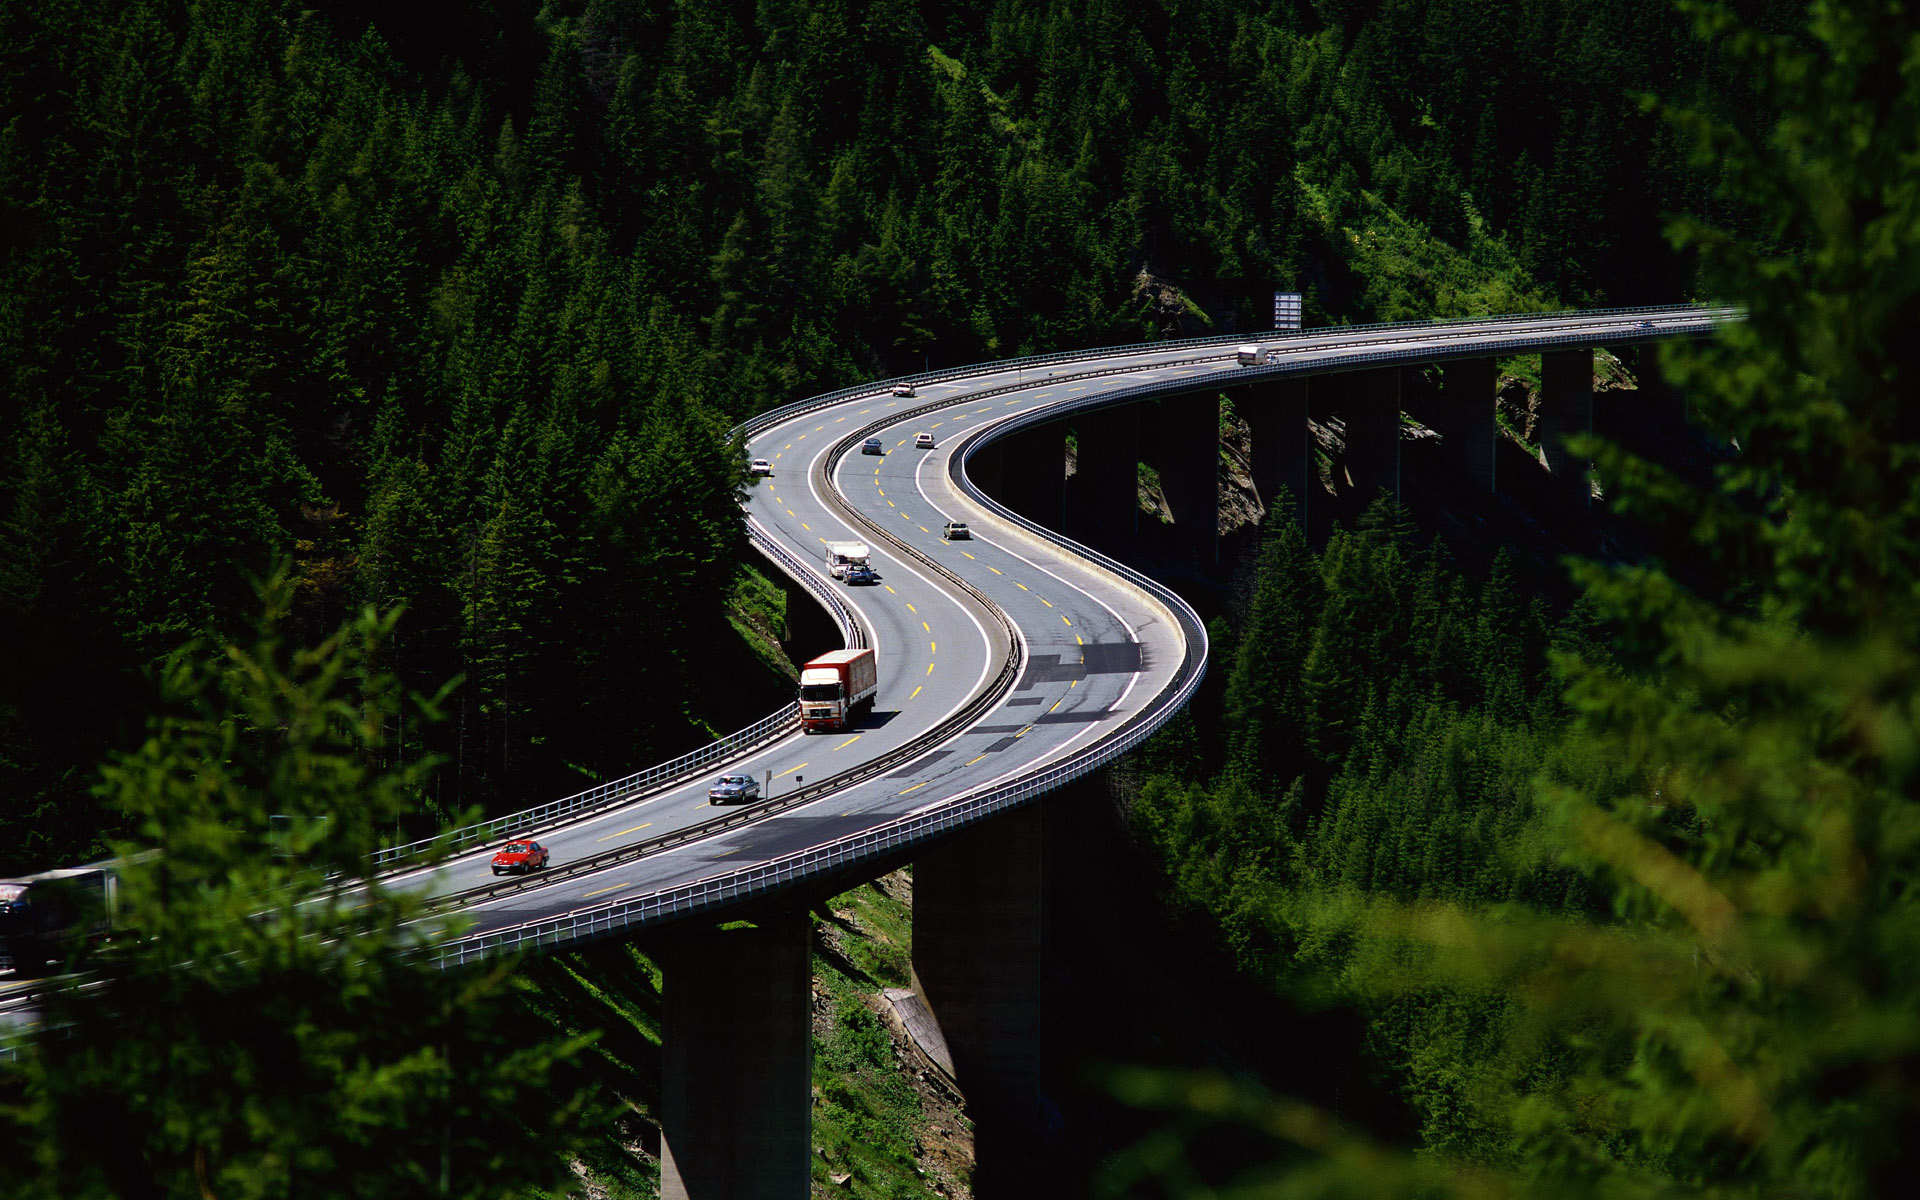 Winding road wallpapers and images - wallpapers, pictures, photos